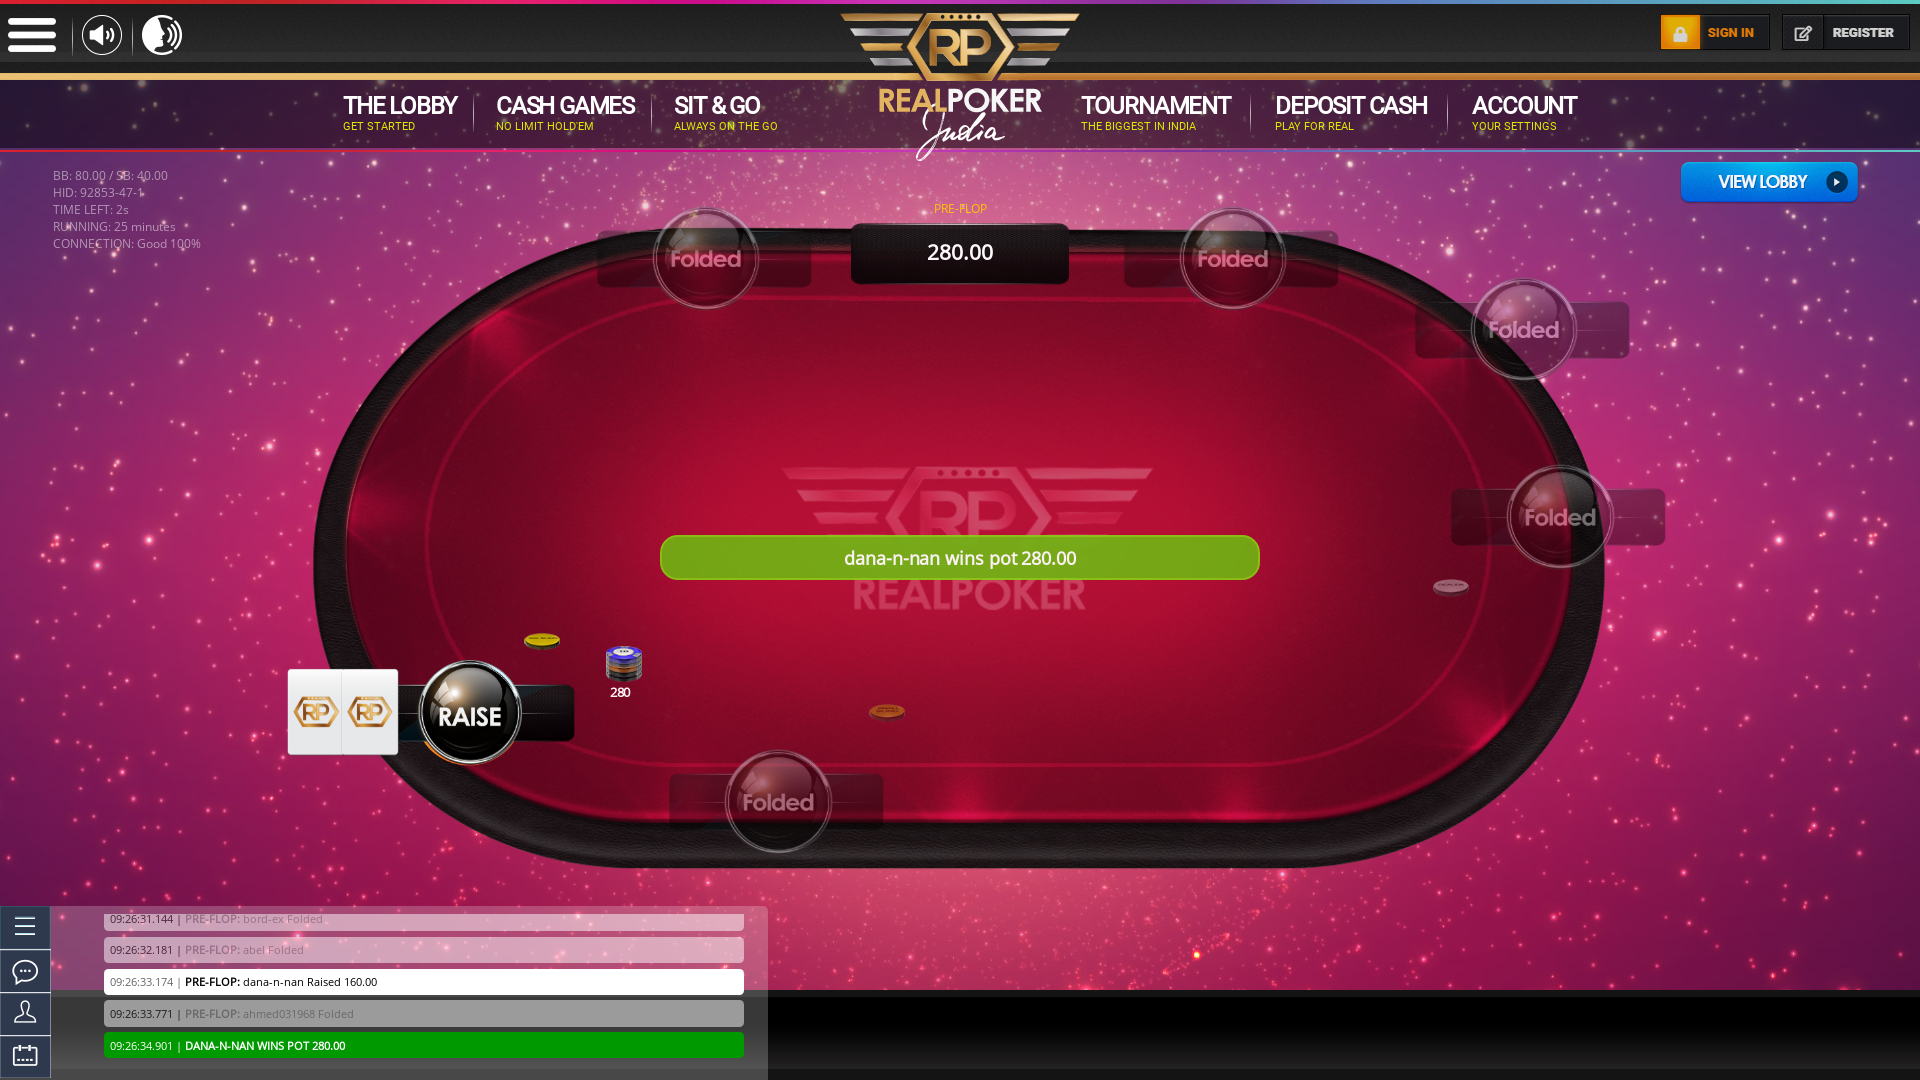 Vadodara Online Poker On The 7th July Real Poker India